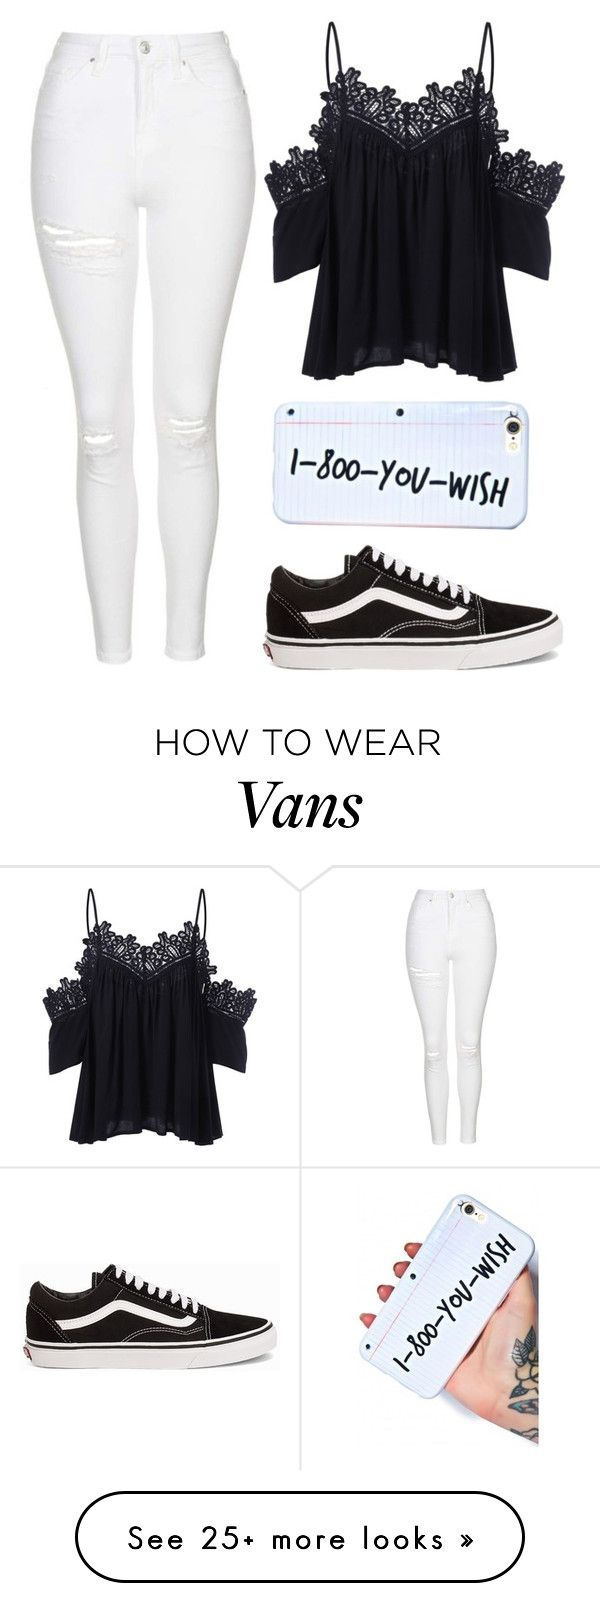 """She got a bad reputation"" by baileejade on Polyvore featuring Topshop and Vans"